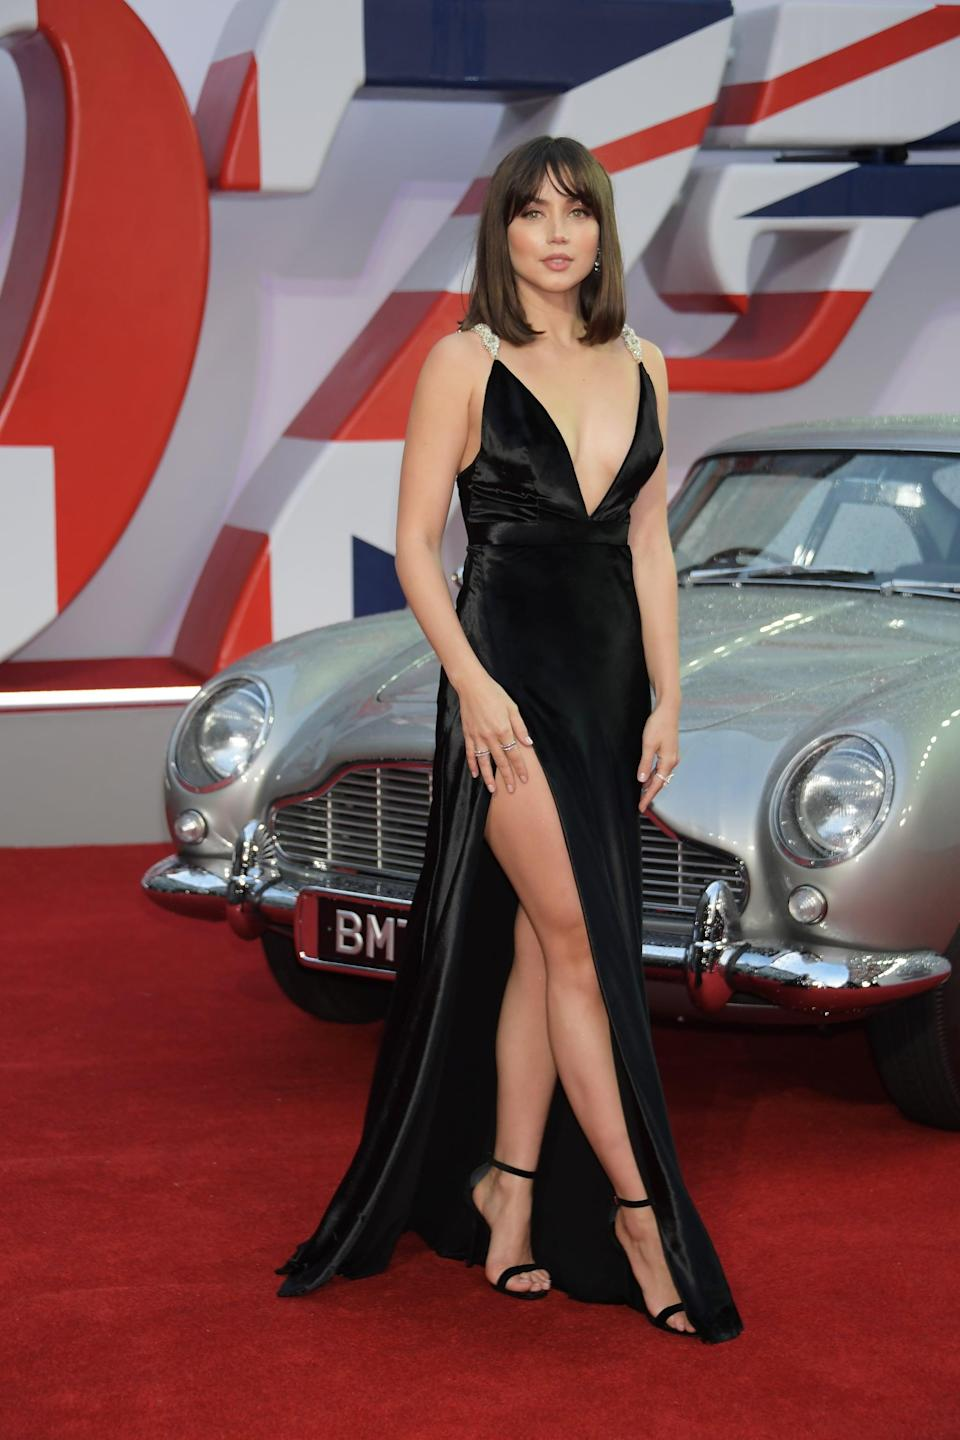 """<p>De Armas wore a <a href=""""https://www.popsugar.com/fashion/ana-de-armas-no-time-to-die-premiere-louis-vuitton-gown-48527668"""" class=""""link rapid-noclick-resp"""" rel=""""nofollow noopener"""" target=""""_blank"""" data-ylk=""""slk:custom Louis Vuitton dress"""">custom Louis Vuitton dress</a> that featured a plunging neckline, a thigh-high slit, and embellished straps. She accessorized with diamonds supplied by Chopard. </p>"""